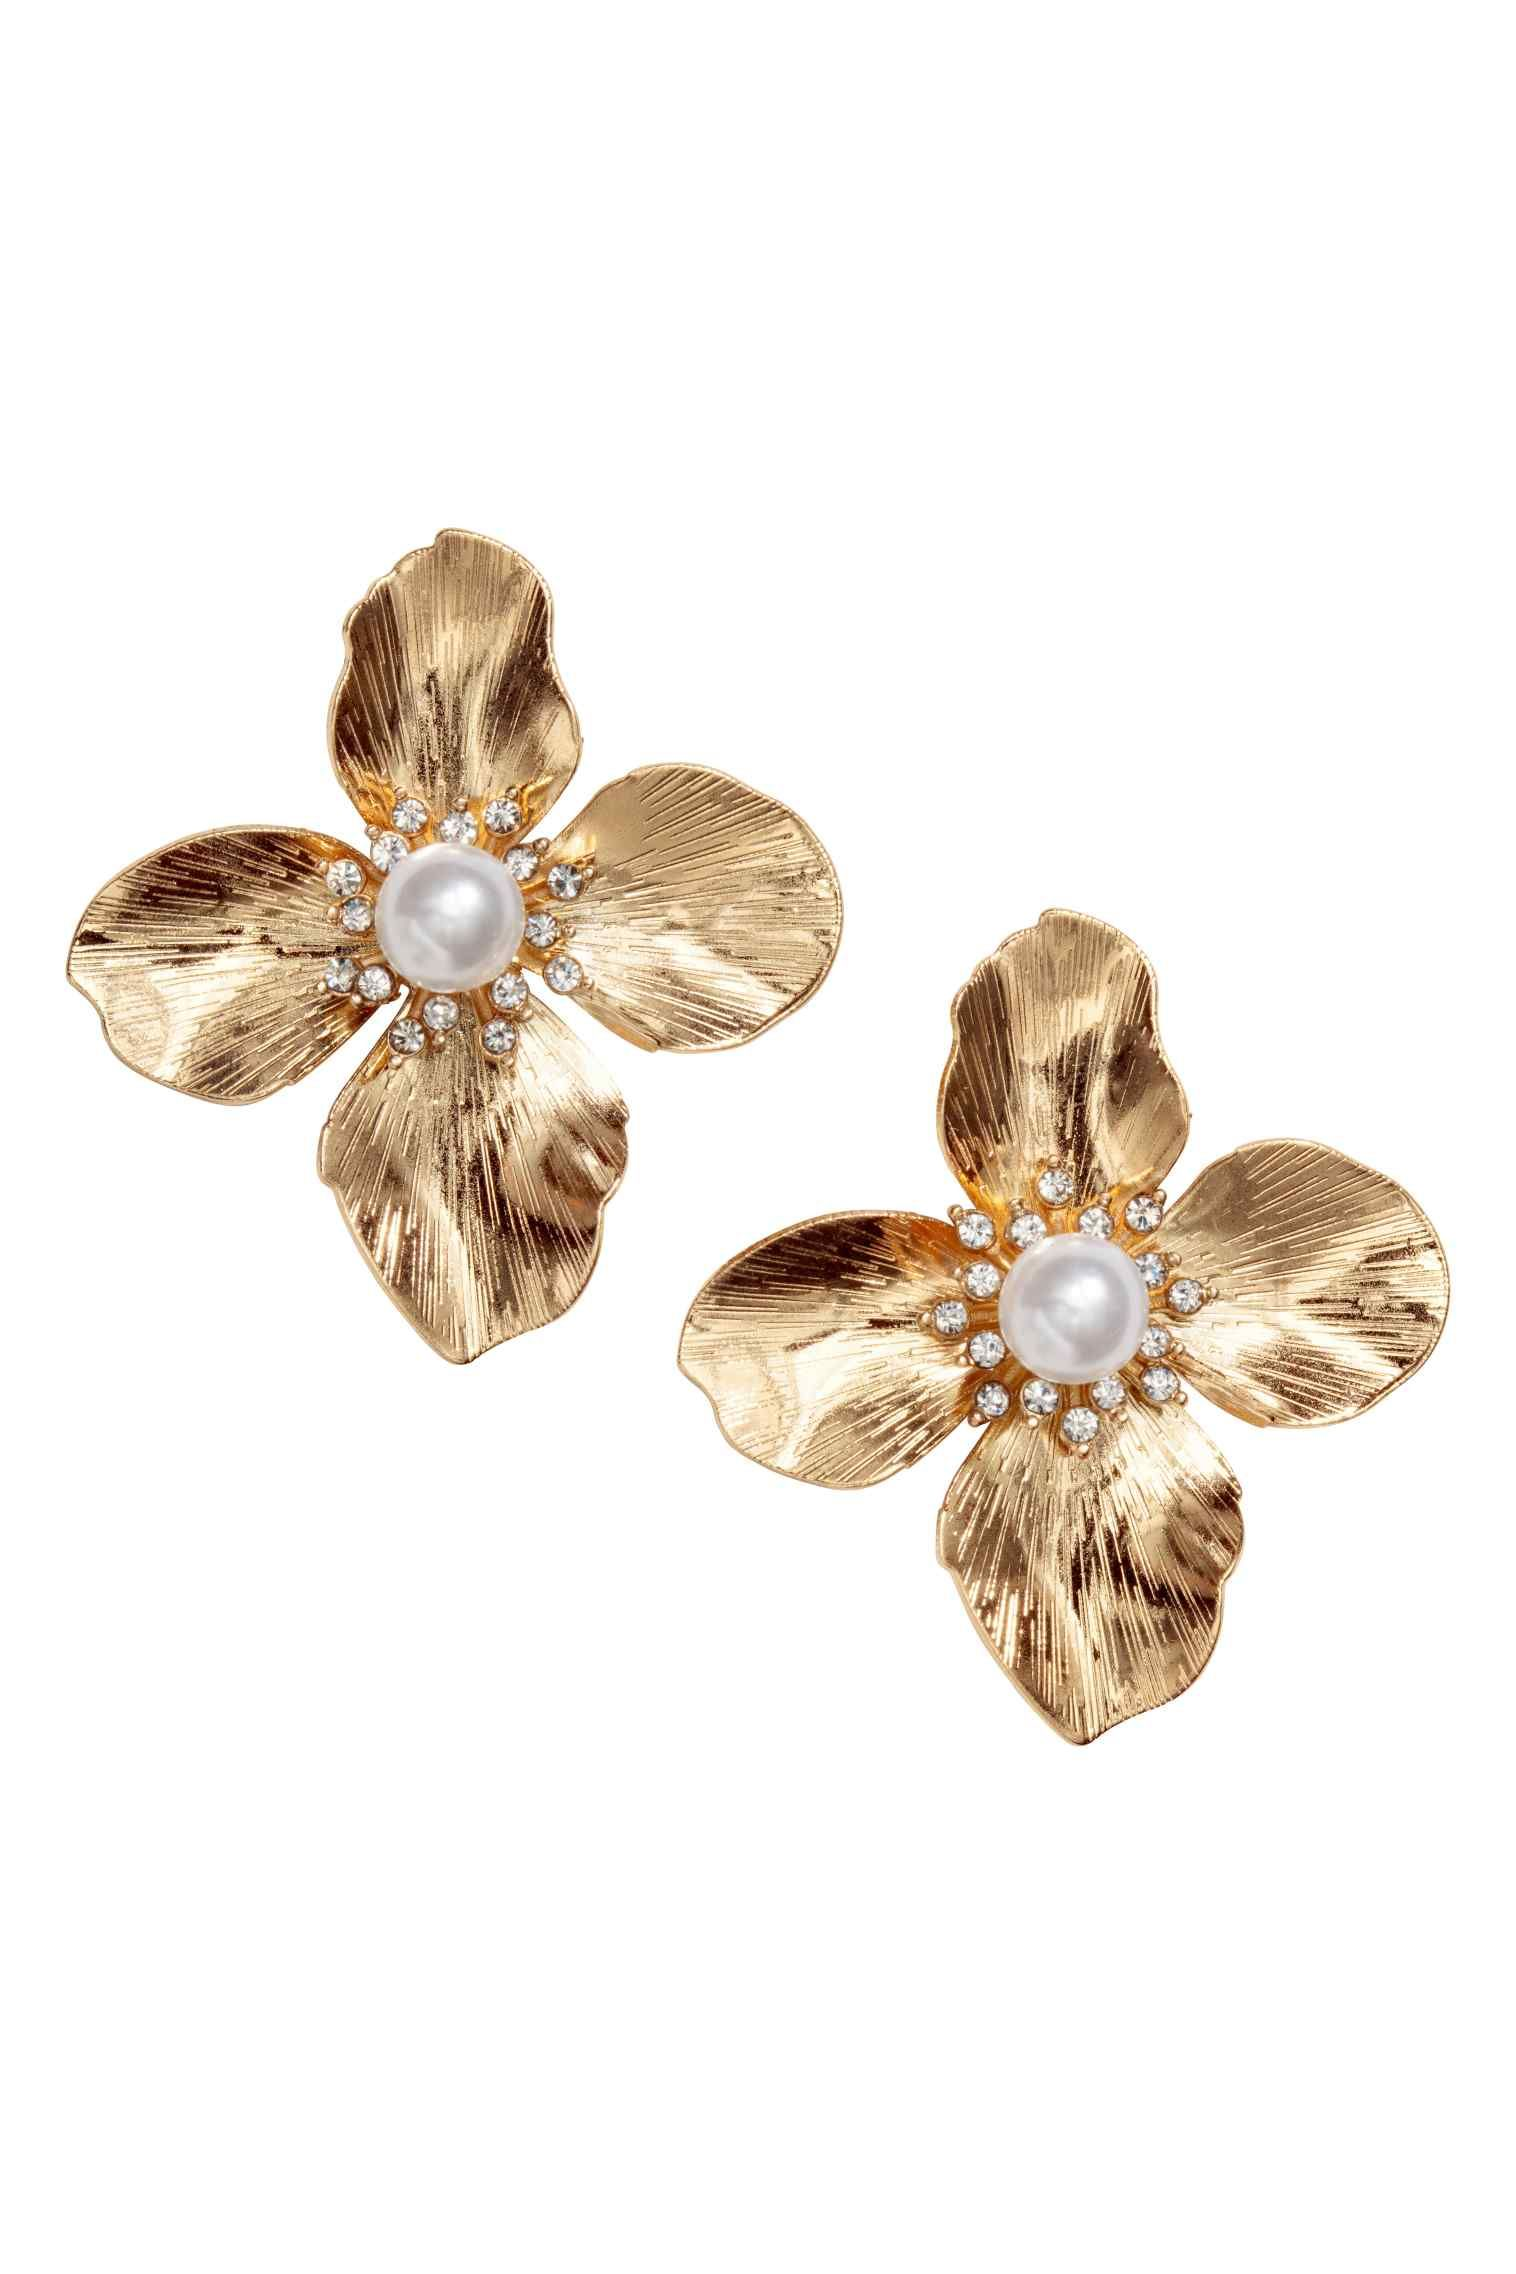 Flower Shaped Earrings With Plastic Sparkly Stones Length 4 5 Cm